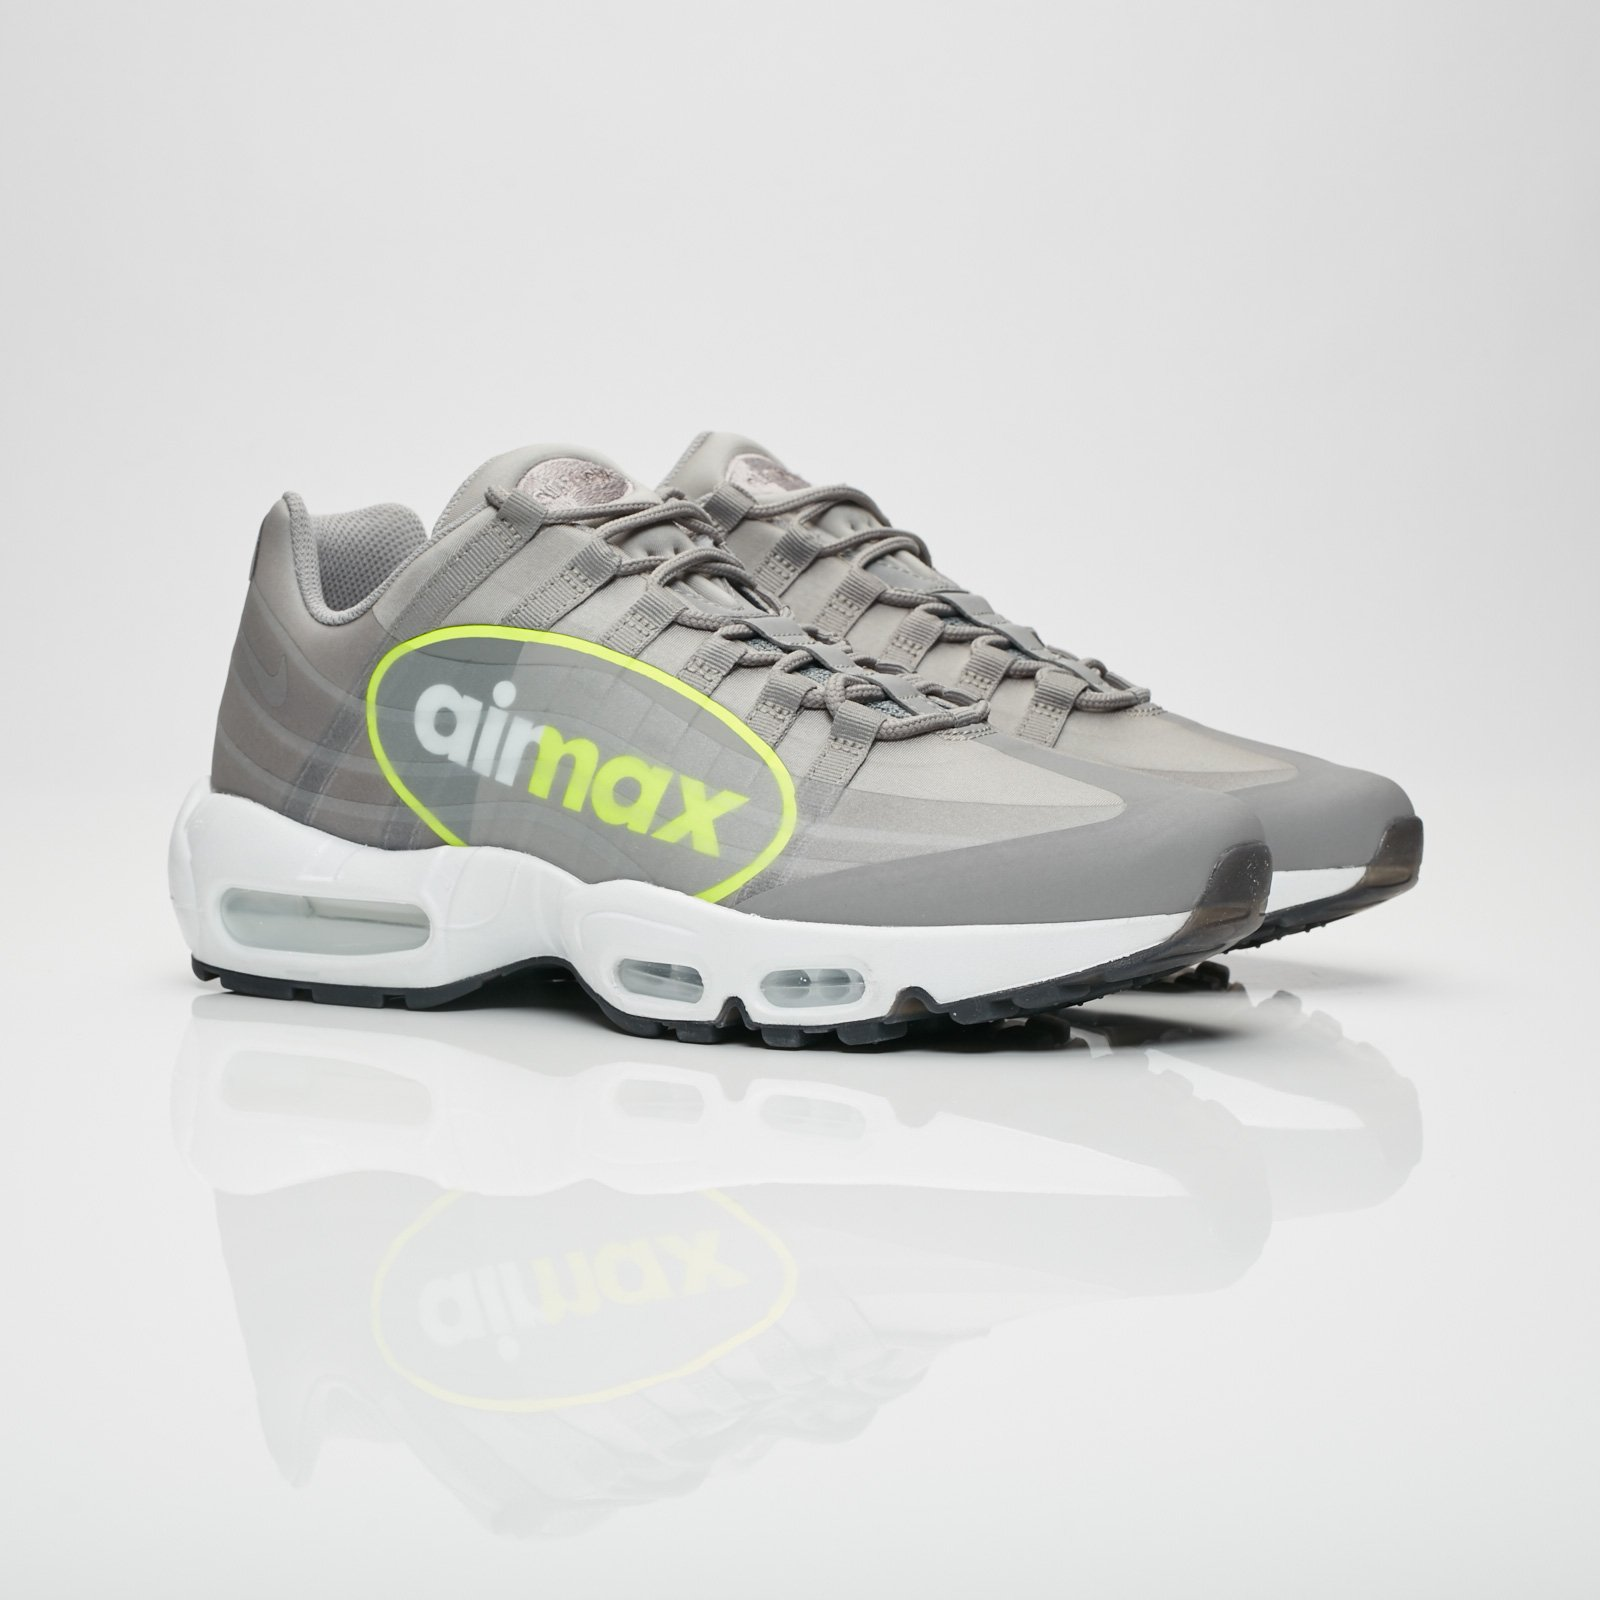 Nike Air Max 95 NS GPX Aj7183 001 Sneakersnstuff